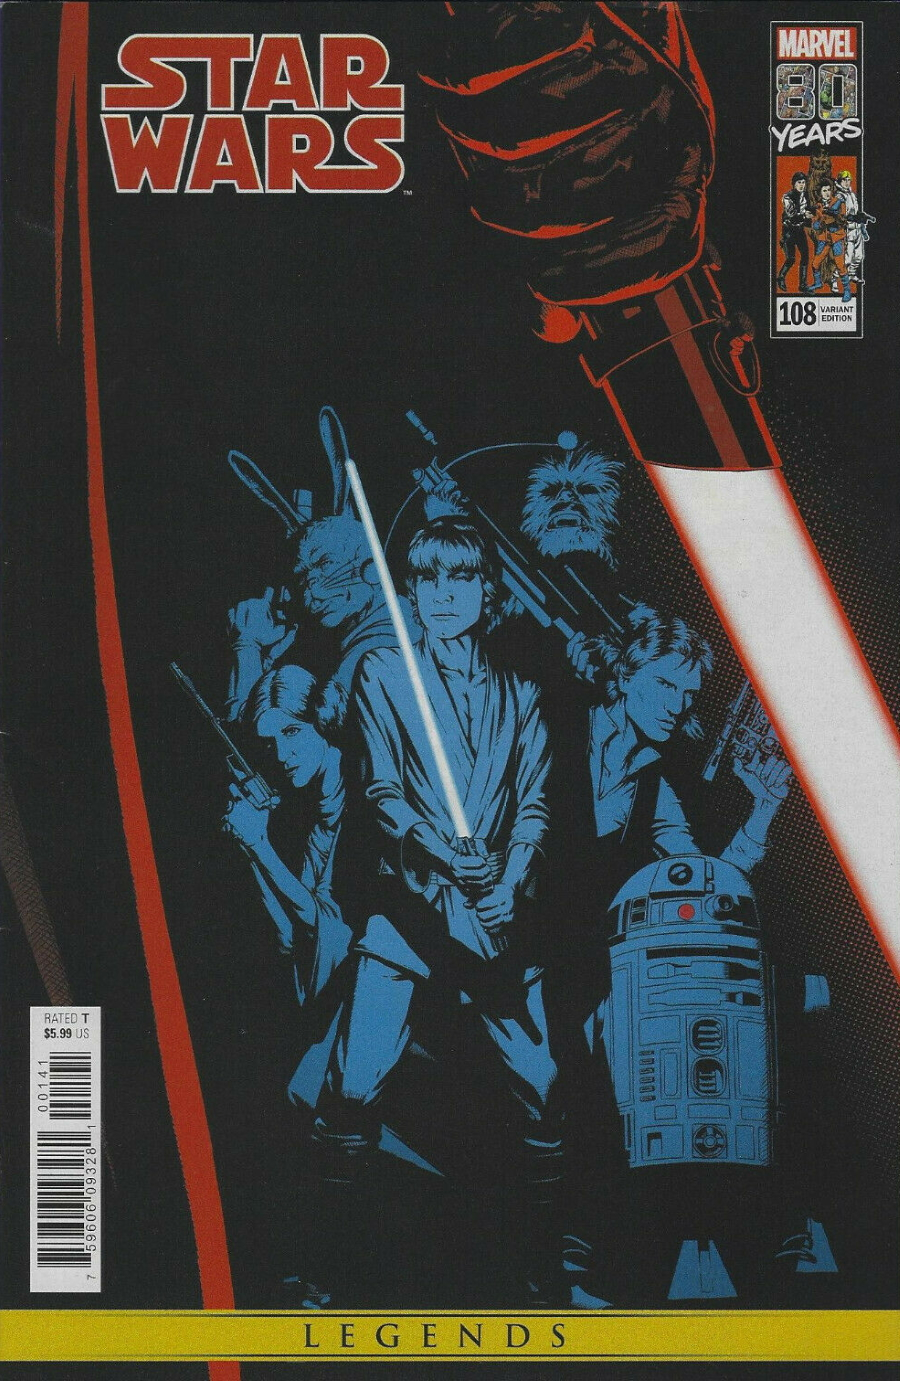 Star Wars #108 (John Tyler Christopher Variant Cover) (29.05.2019)